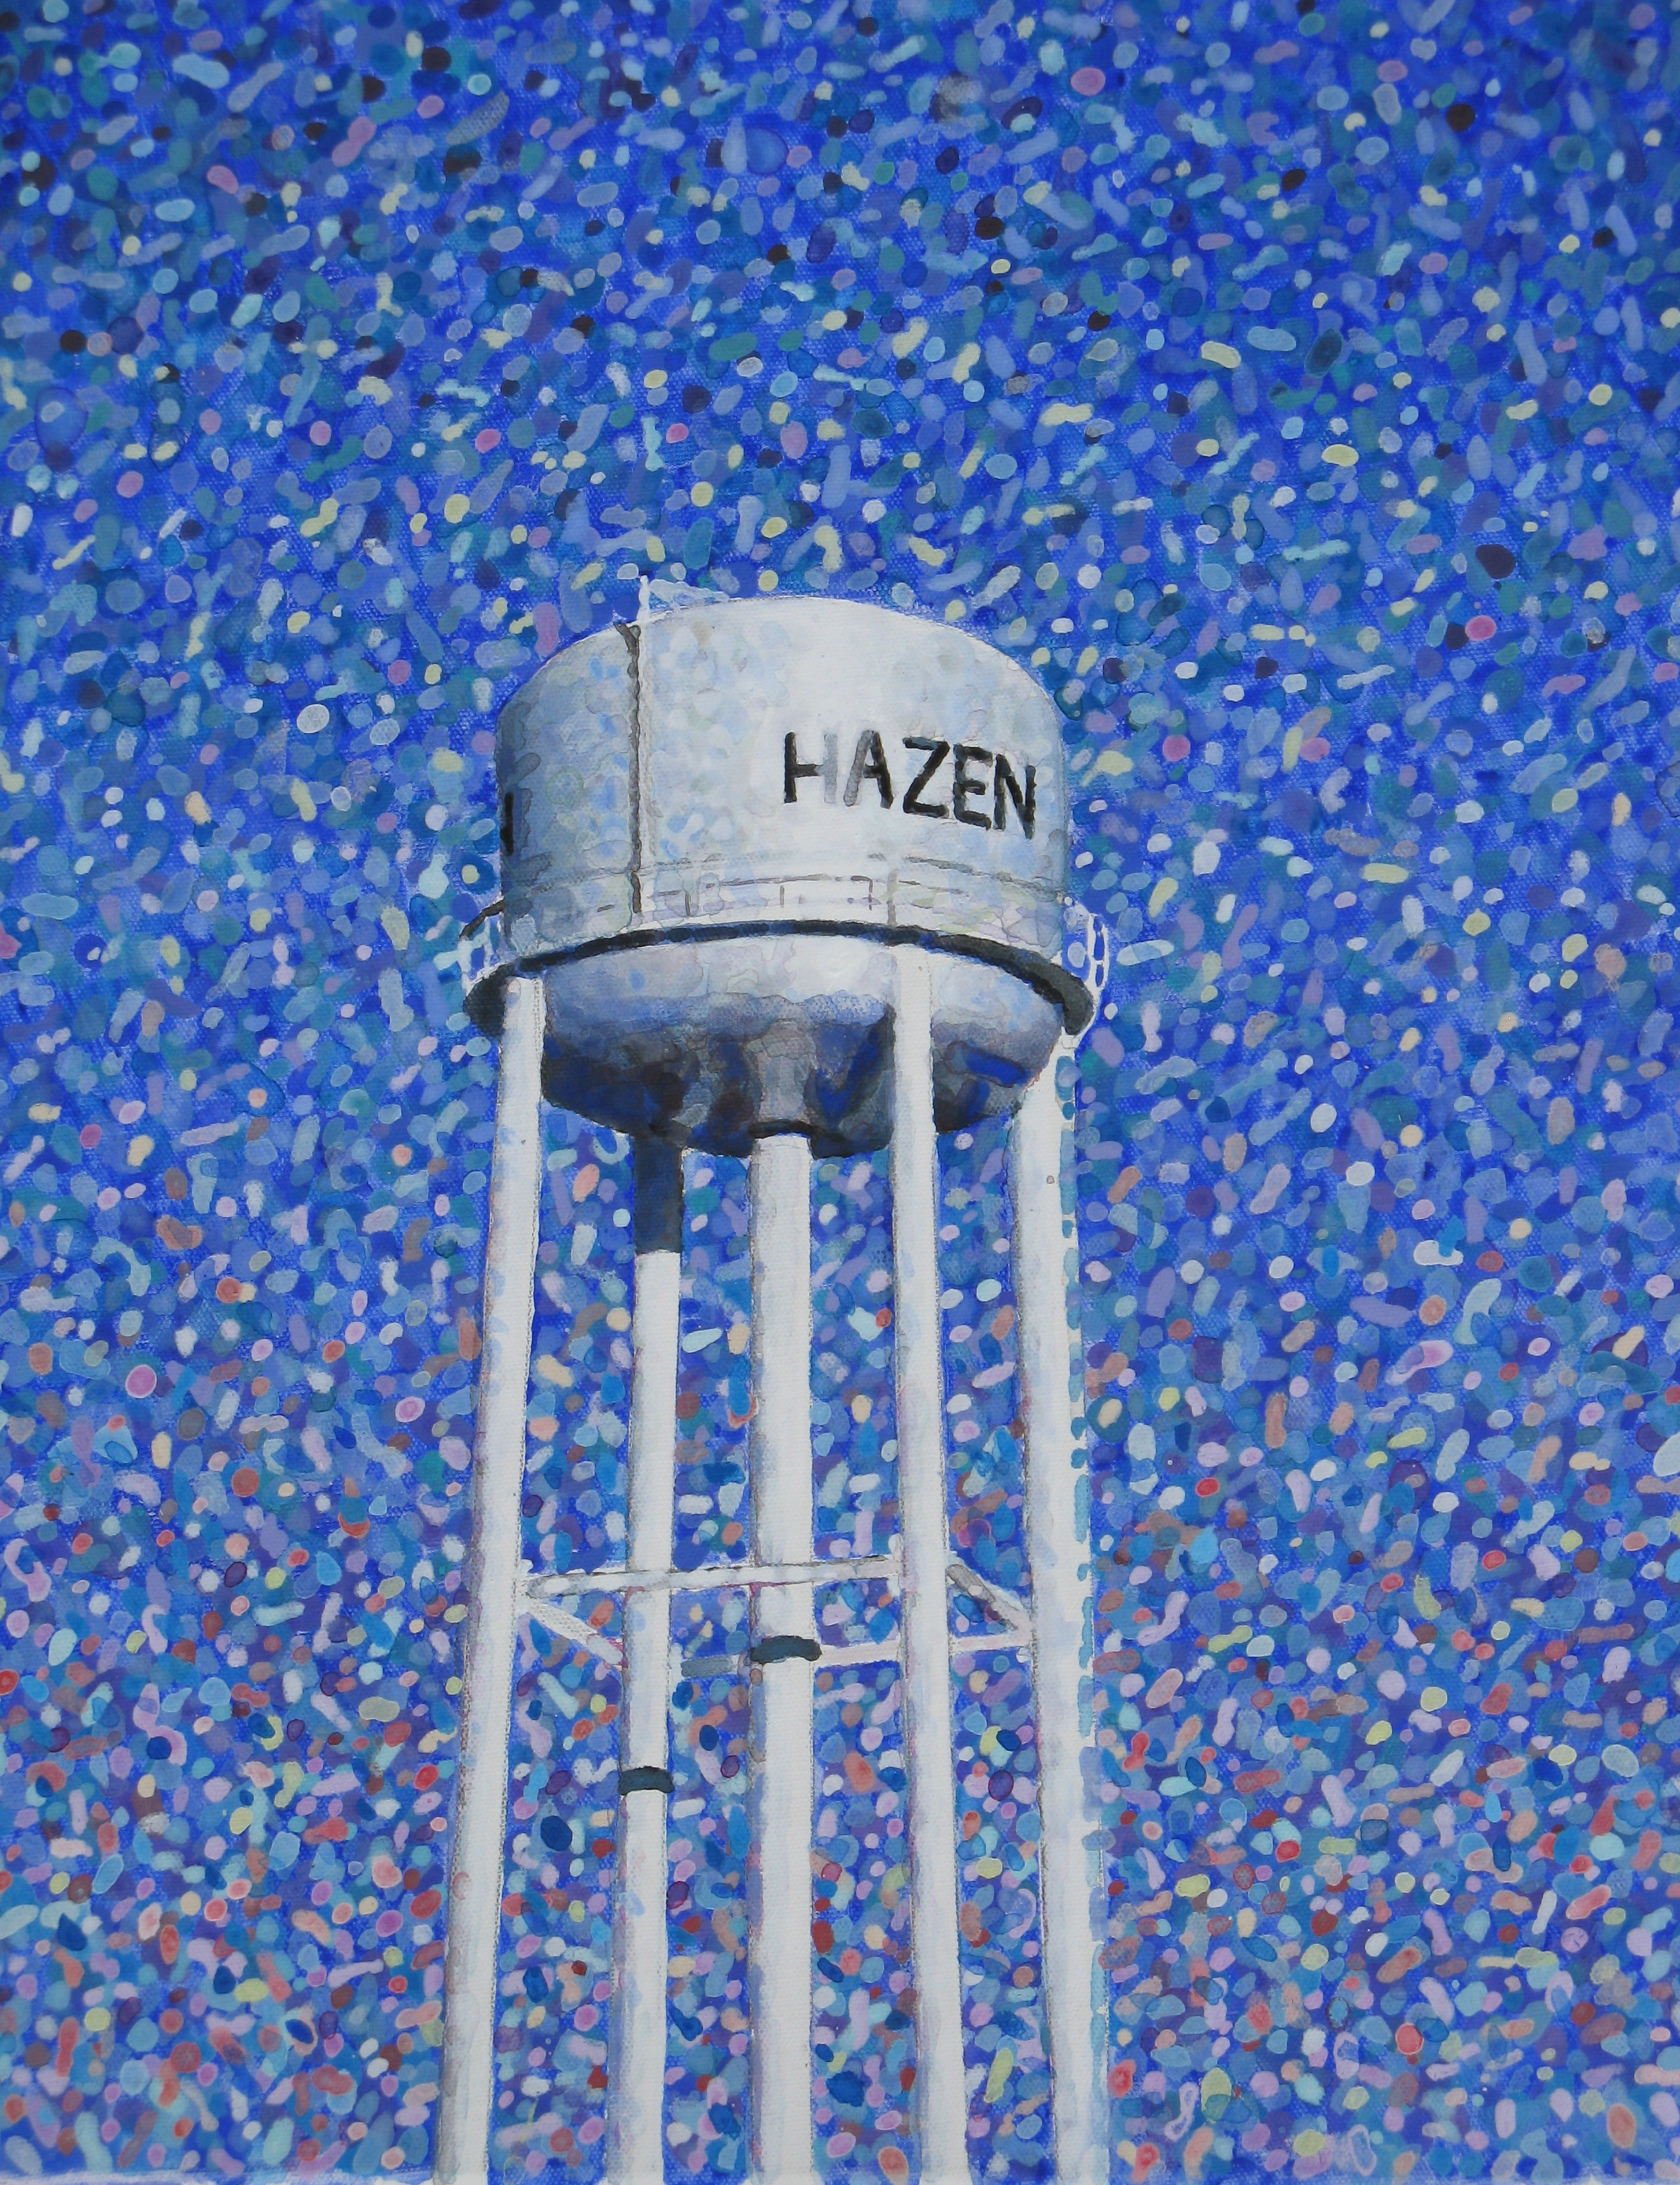 The water tower in Hazen, AR